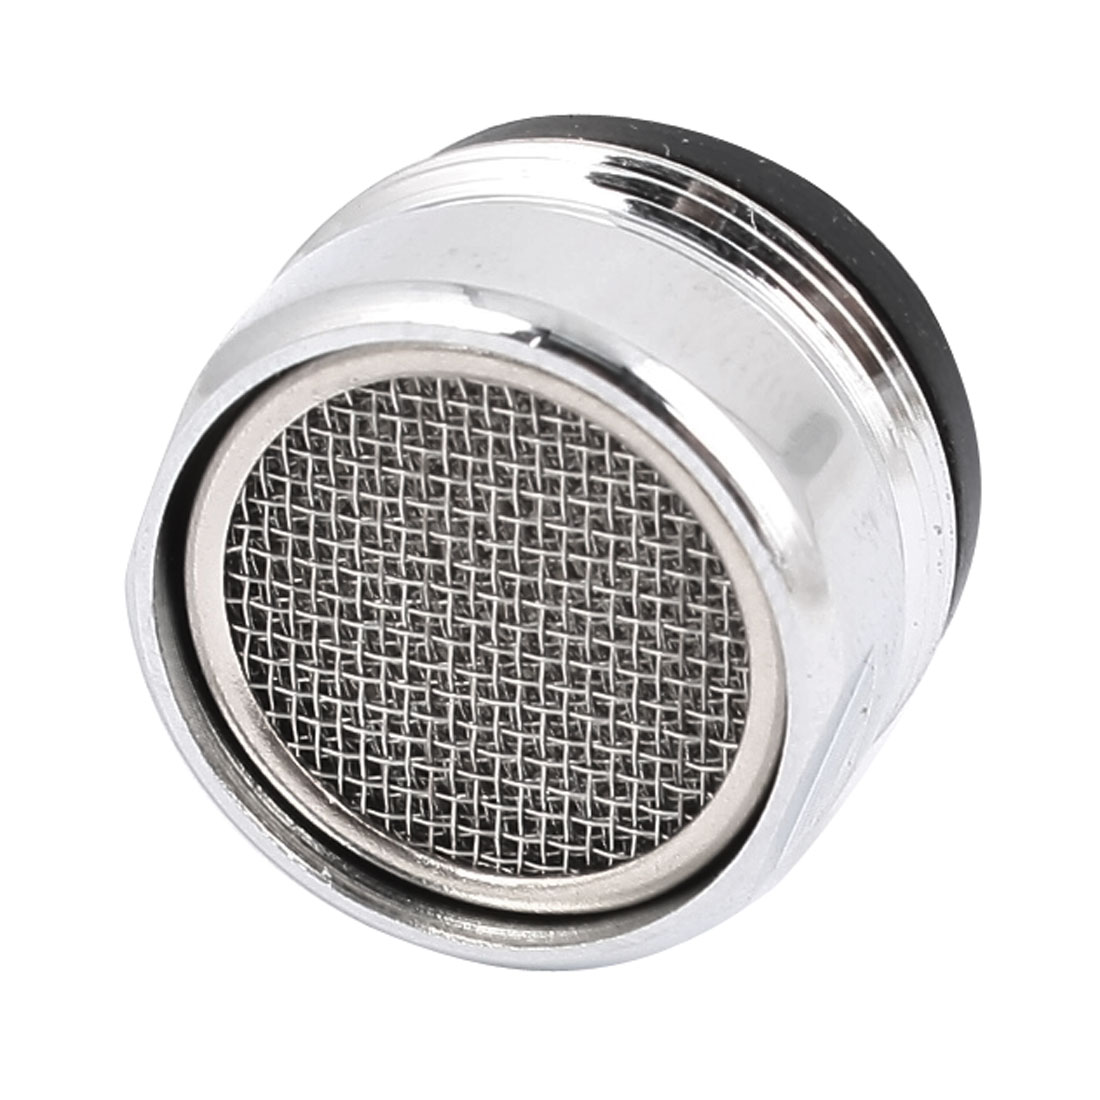 22mm Male Thread Silver Tone Faucet Tap Filtering Net Spout Aerator Nozzle